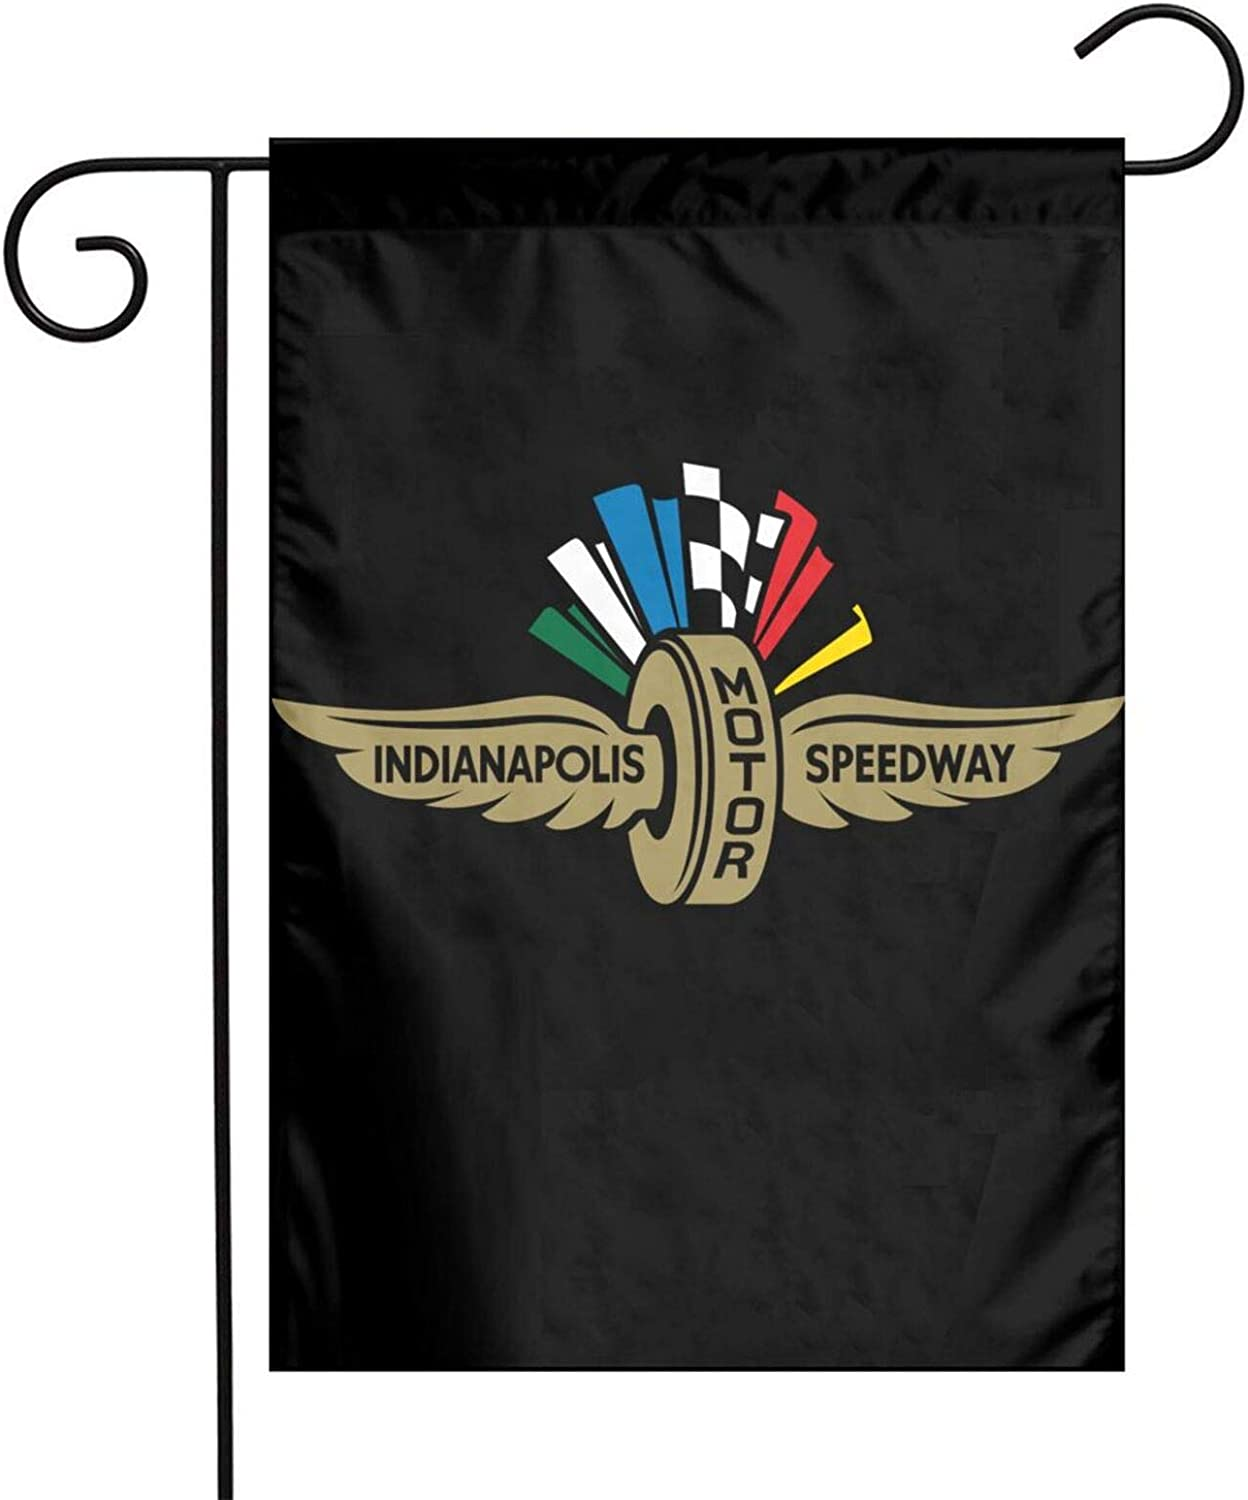 Azzwoiu Indy 500 Garden Flag Welcome Home Decorative Double Sided Outdoor Vertical Yard Seasonal Outdoor Flag 12 X 18